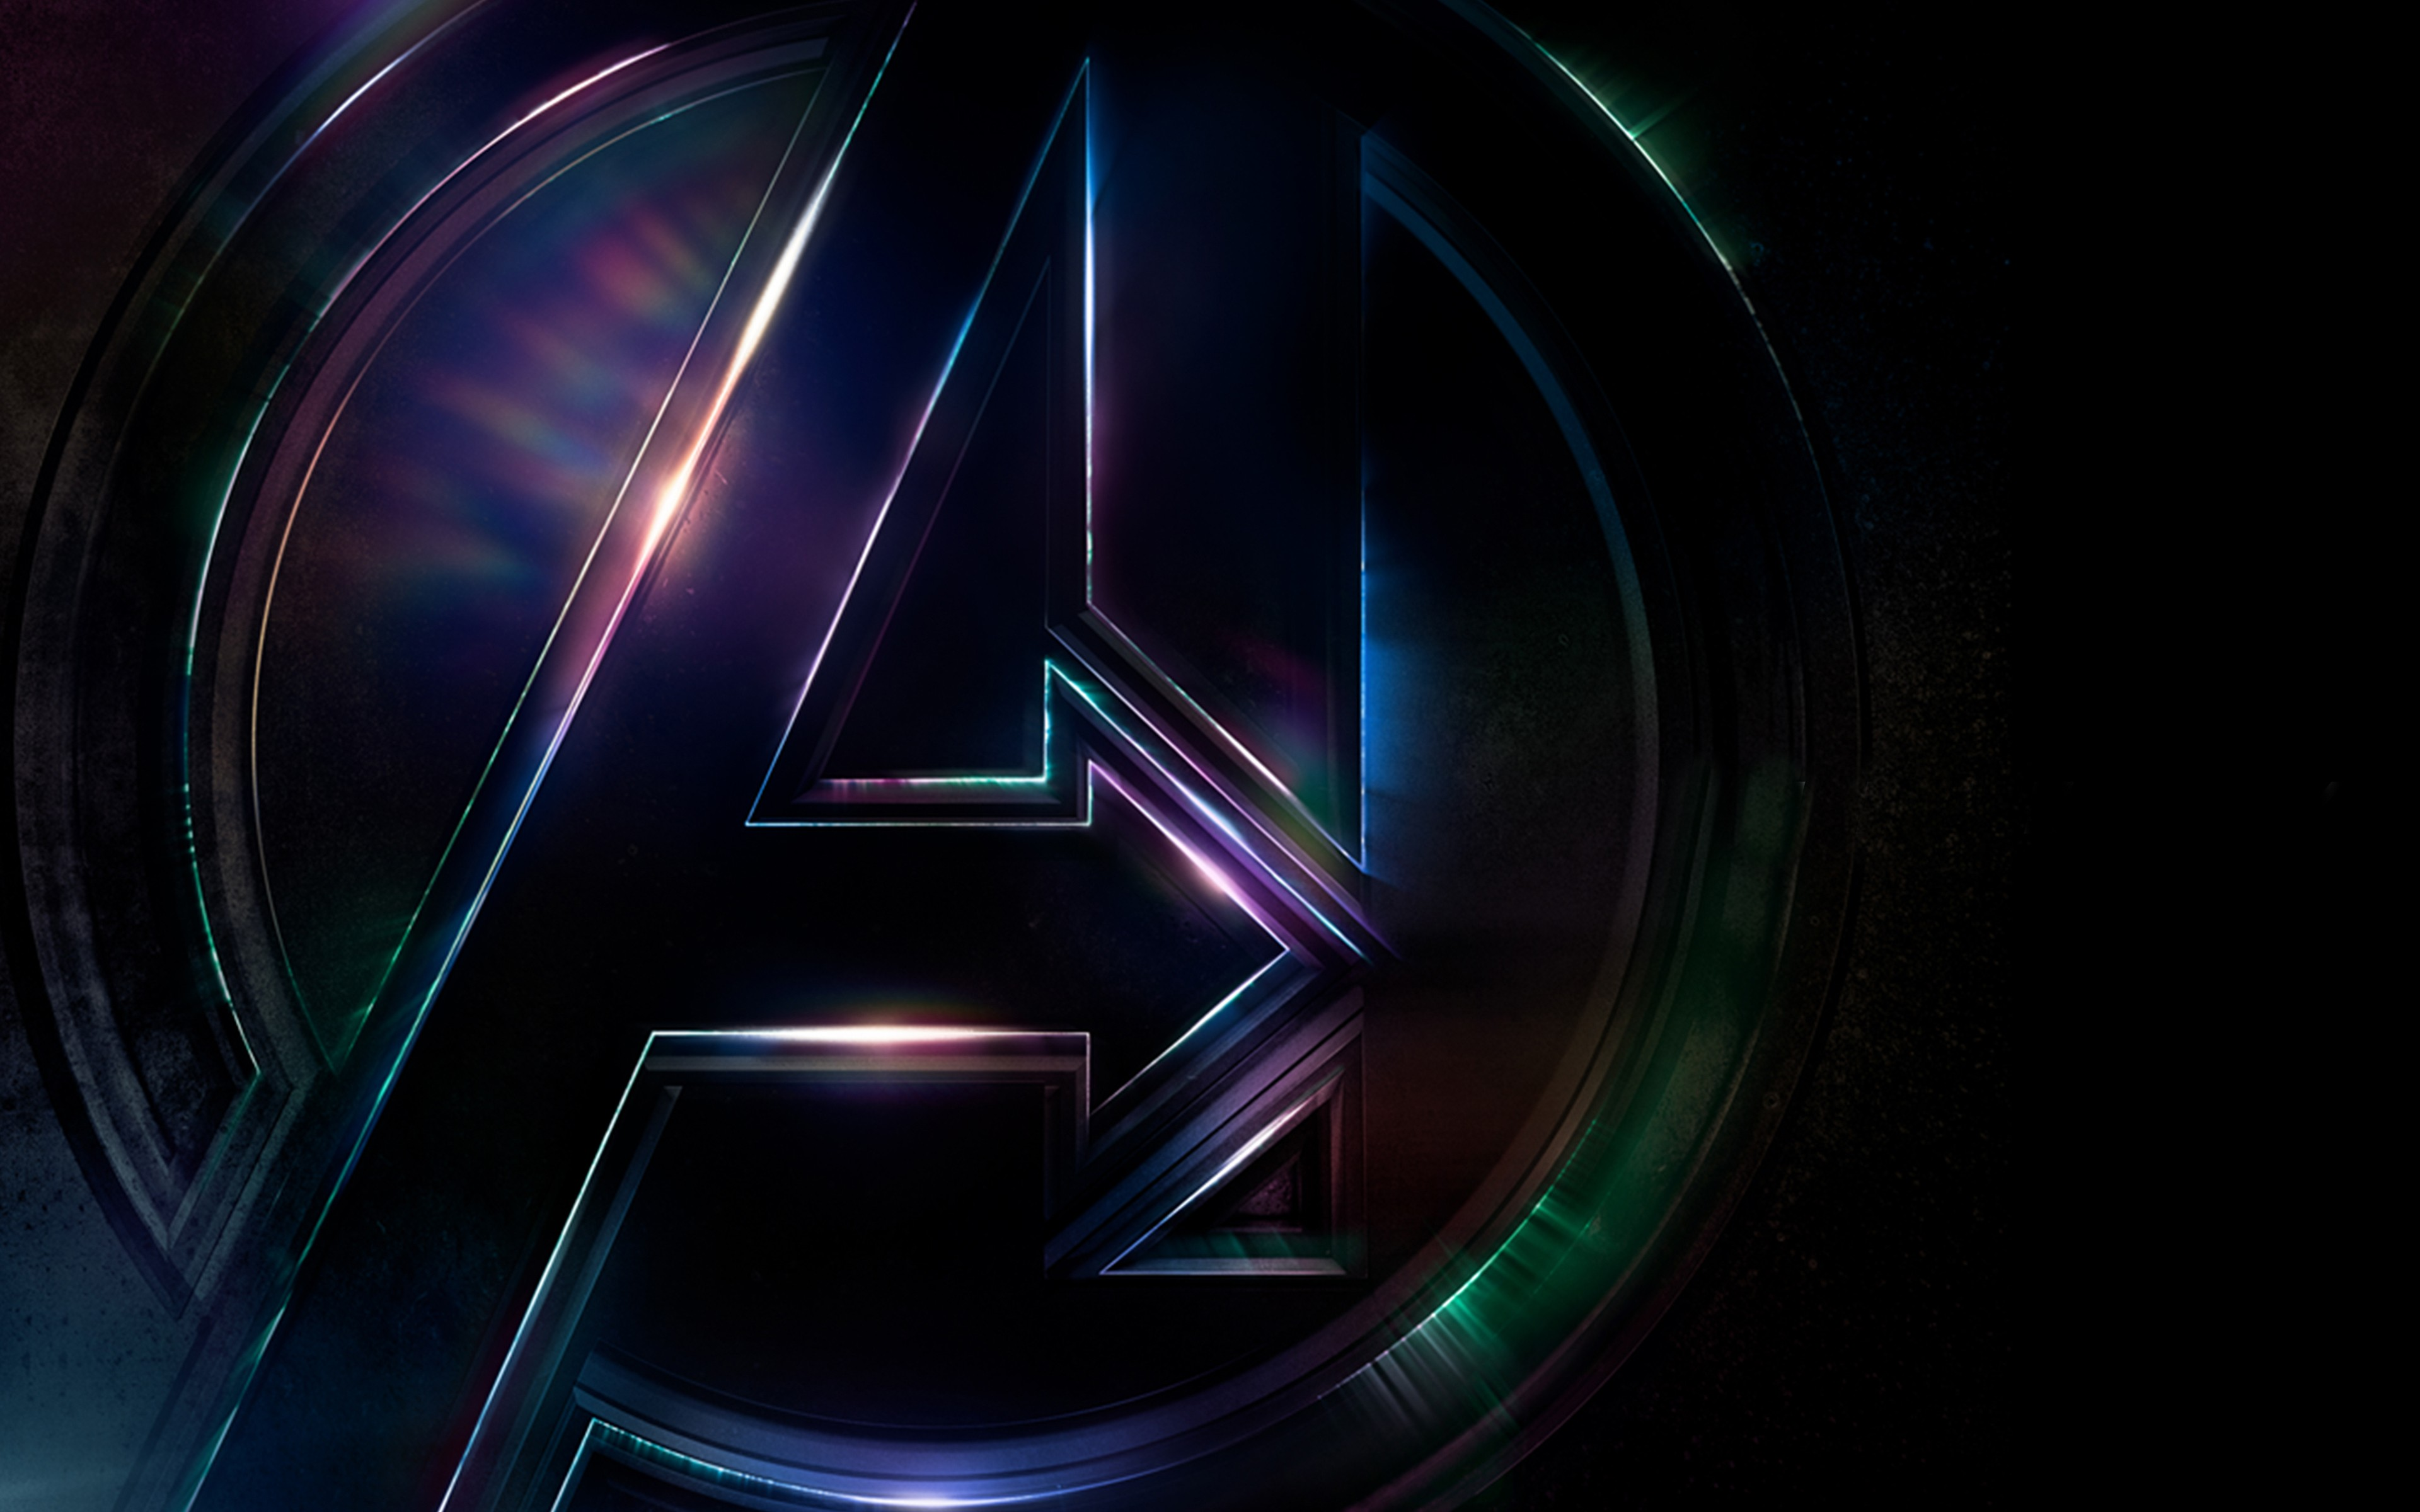 Superman 3d Wallpaper For Android Avengers Infinity War Logo 4k Wallpapers Hd Wallpapers